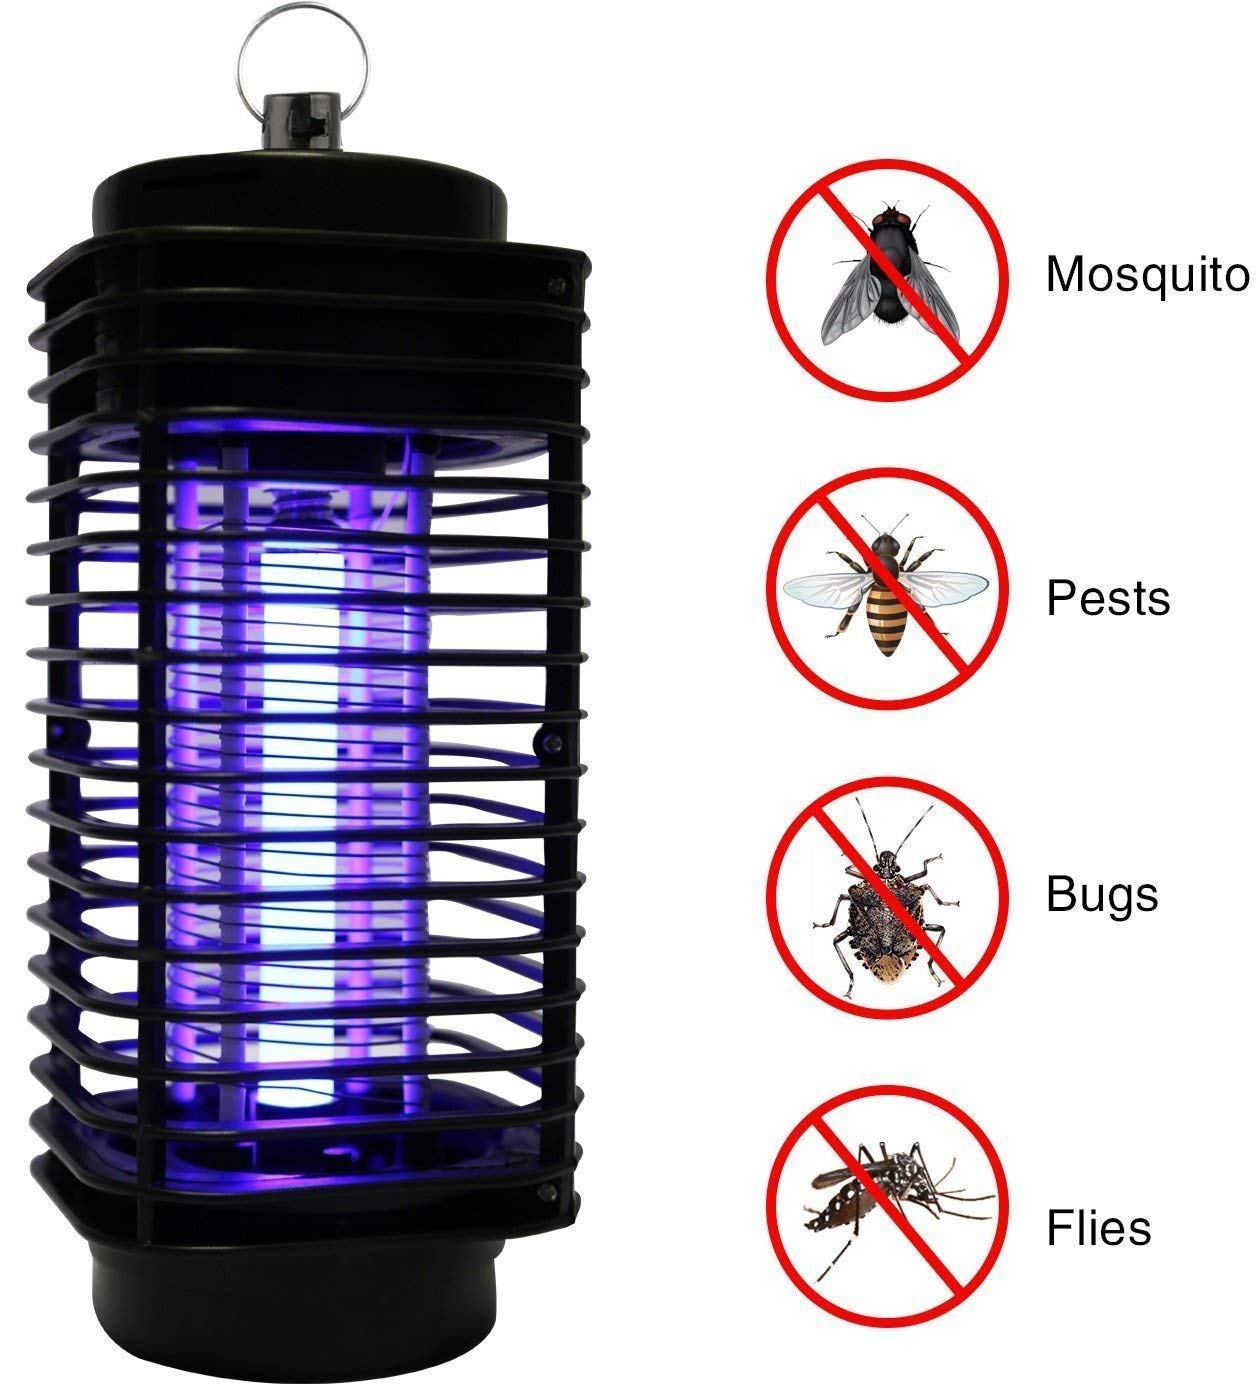 Mosquito Killer Lamp, Bug Zapper and Fly Zapper Catcher Killer Trap - Protects Up to 1.5 Acre/Bug and Fly Killer, Insect Killer, Mosquito Killer - For Residential and Commercial Use CYLONG TECH